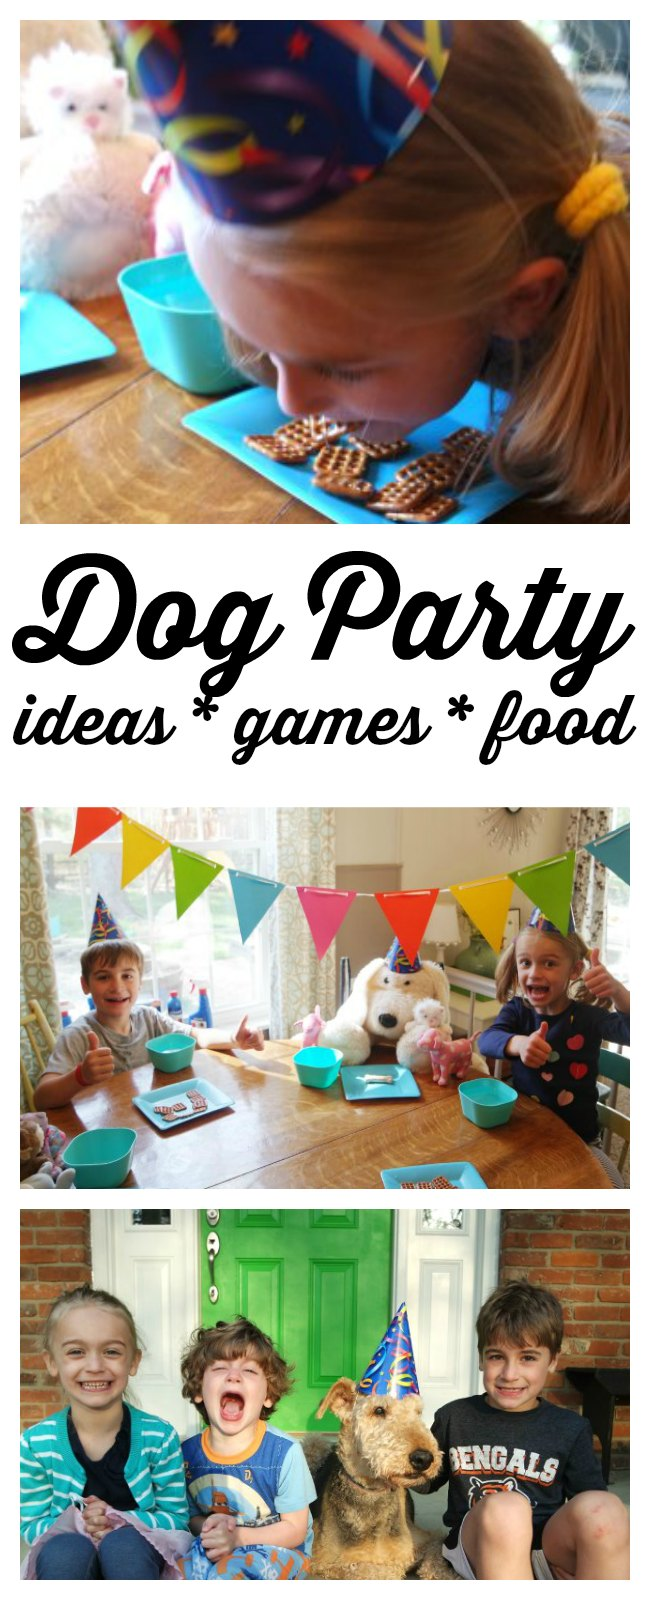 Planning a dog party? I'm sharing my favorite dog party ideas - including dog party games, the best dog party food, dog party decorations and (of course) the best dog party gifts! Great ideas for puppy and dog parties.